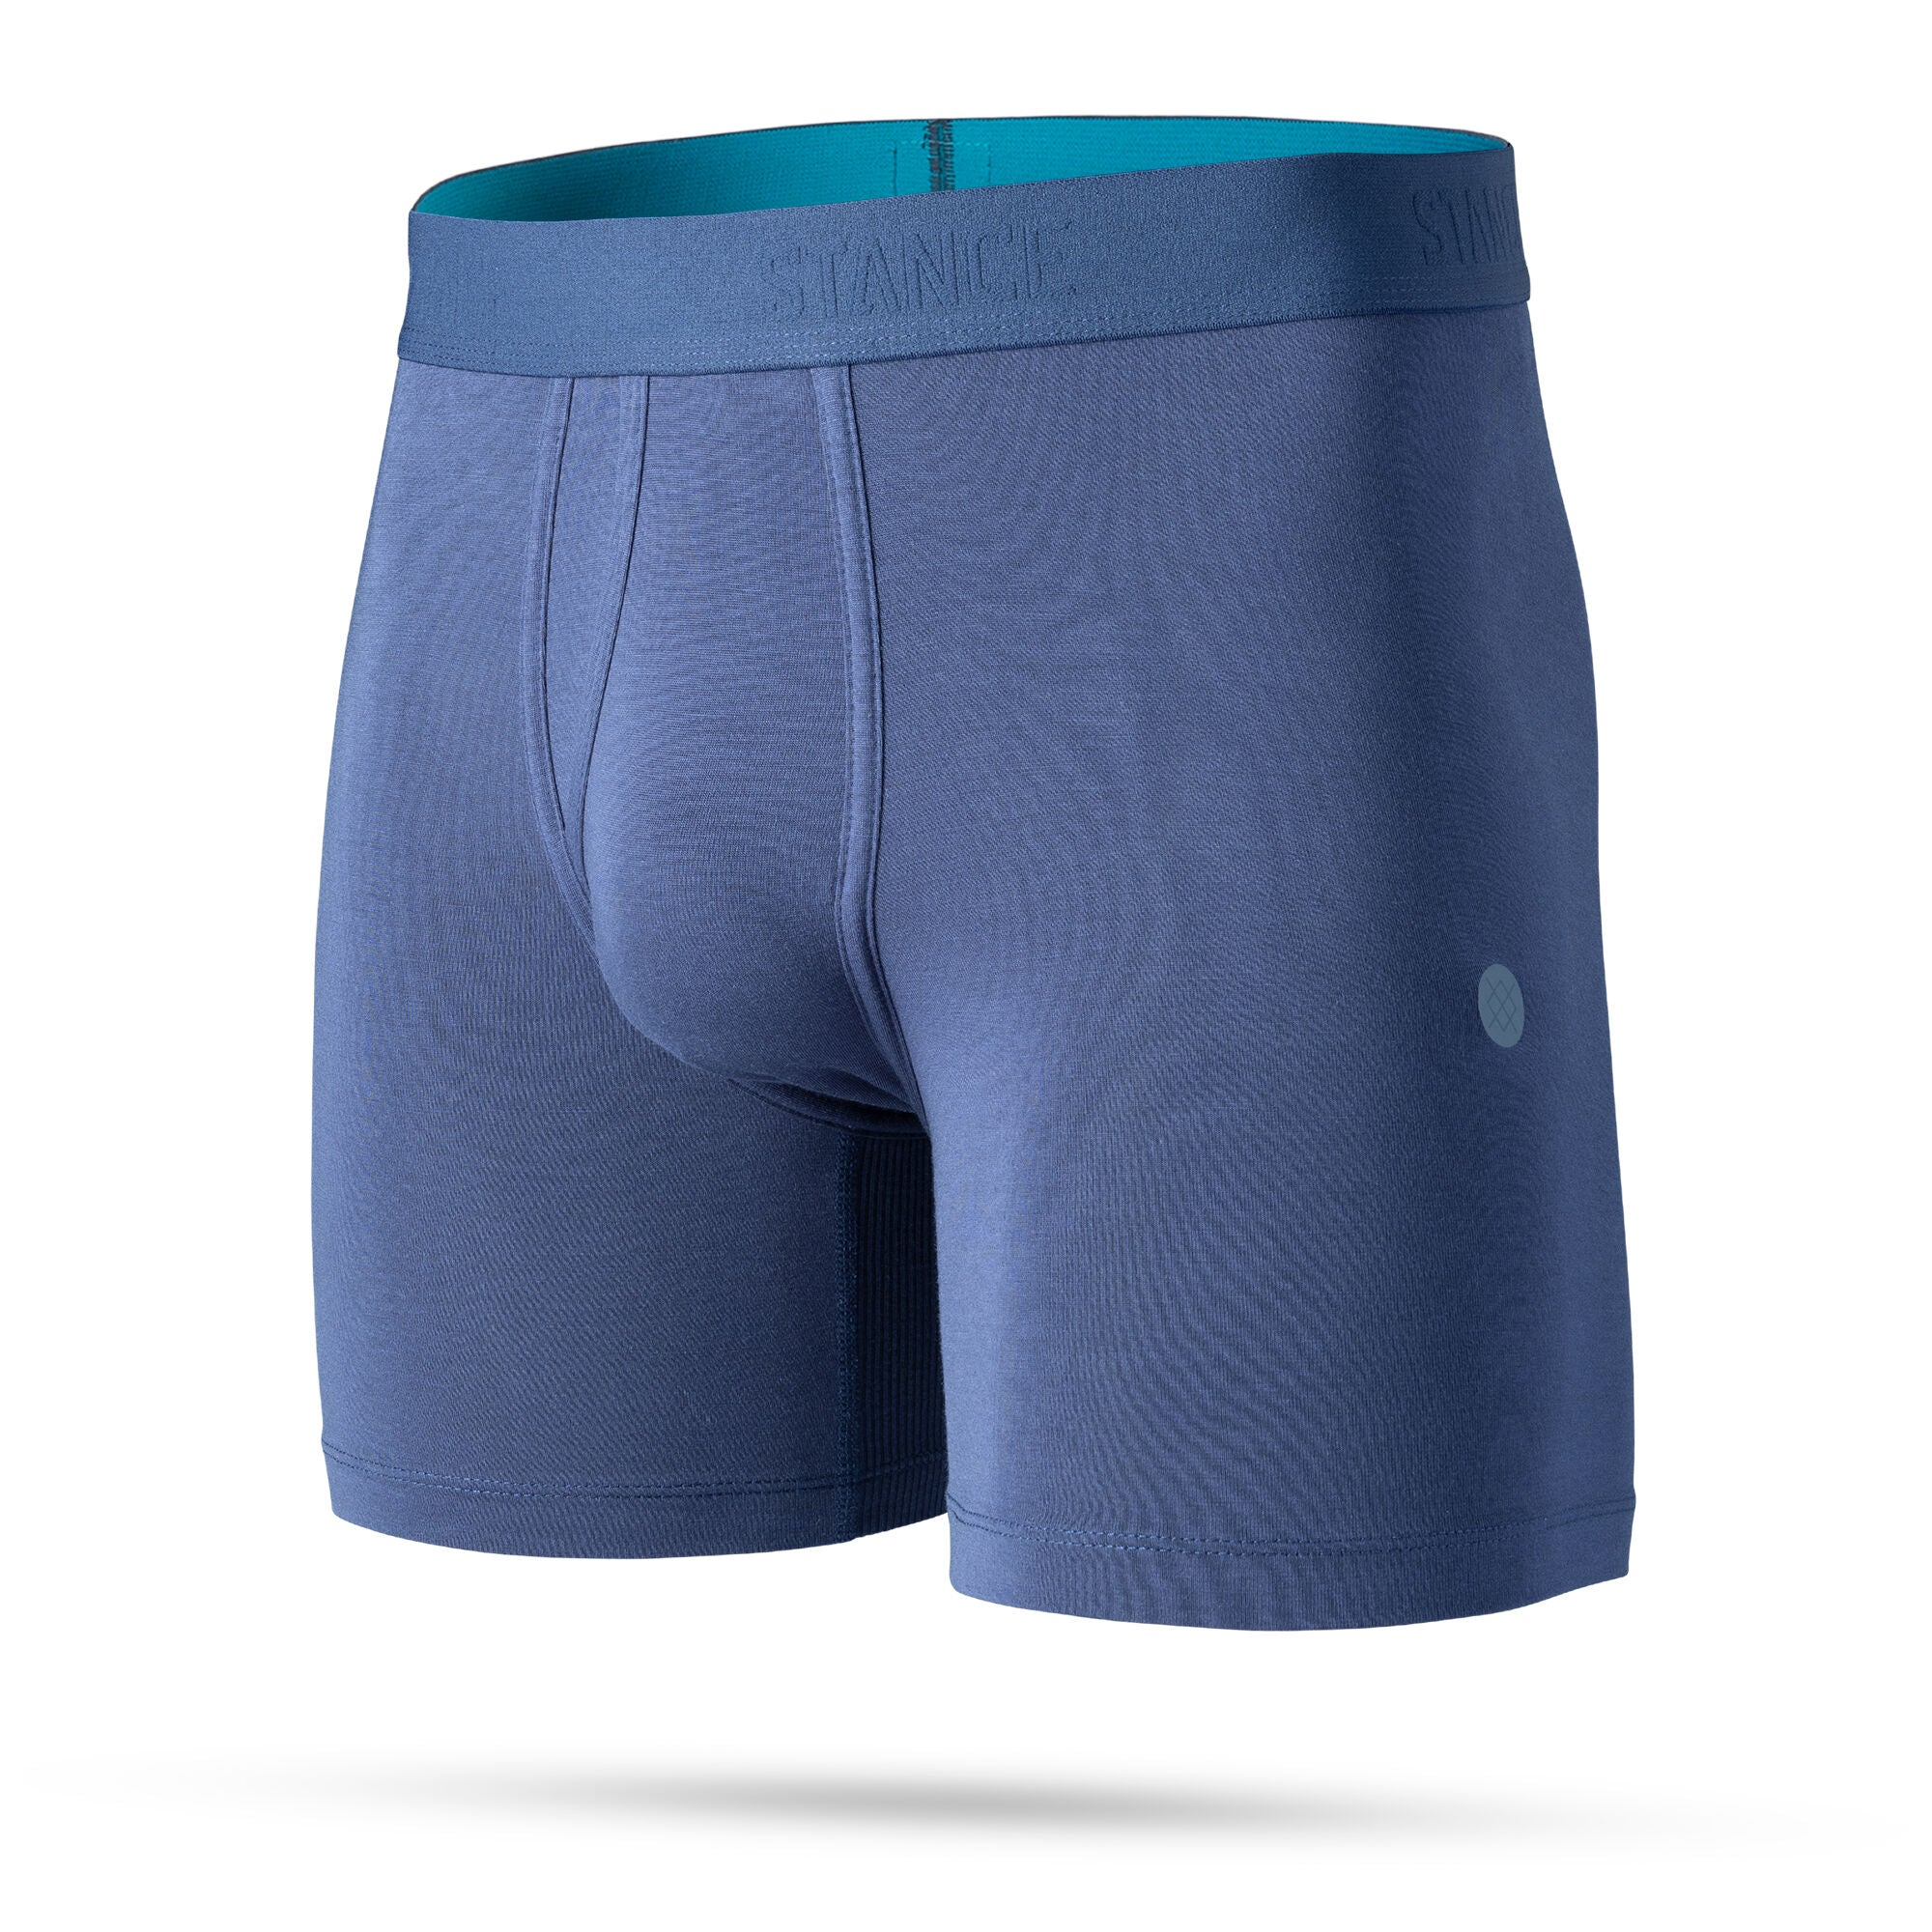 Stance Staple ST Wholester Men's Boxer Briefs